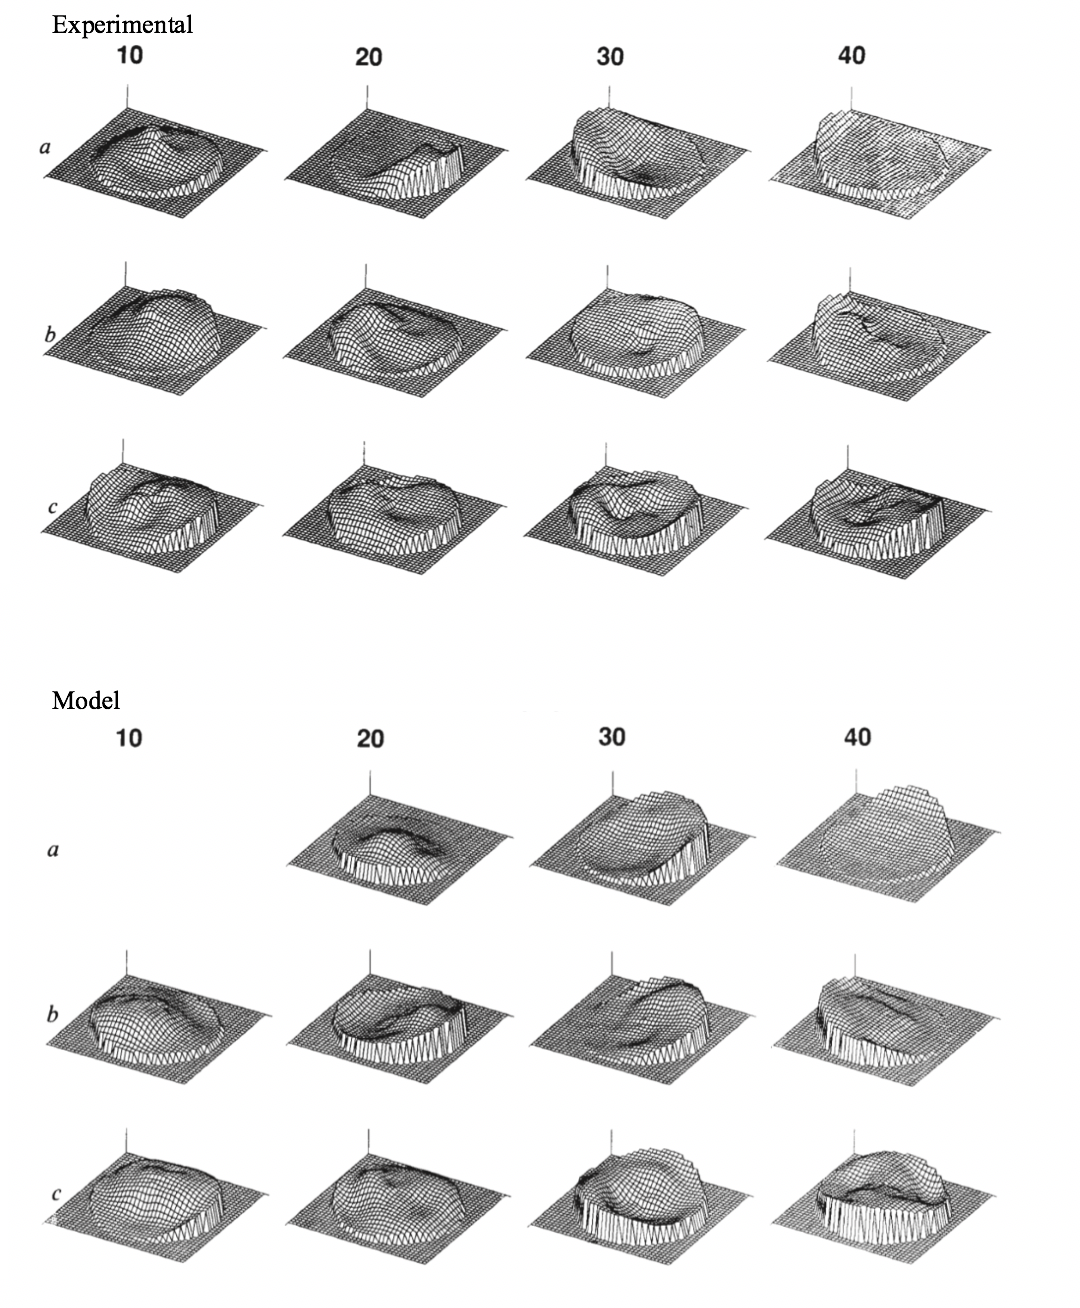 Figure B: comparison of experimental and model-derived receptive fields. Top: receptive field for various PPC neurons. Bottom: receptive fields various hidden layer units in the model. Modified from figure 2 and figure 5 of Zipser and Andersen (1988). To generate receptive fields, monkey fixated at a single point and was presented spot stimuli at various locations on the screen. The responses and a smooth surface was fit to the data points.